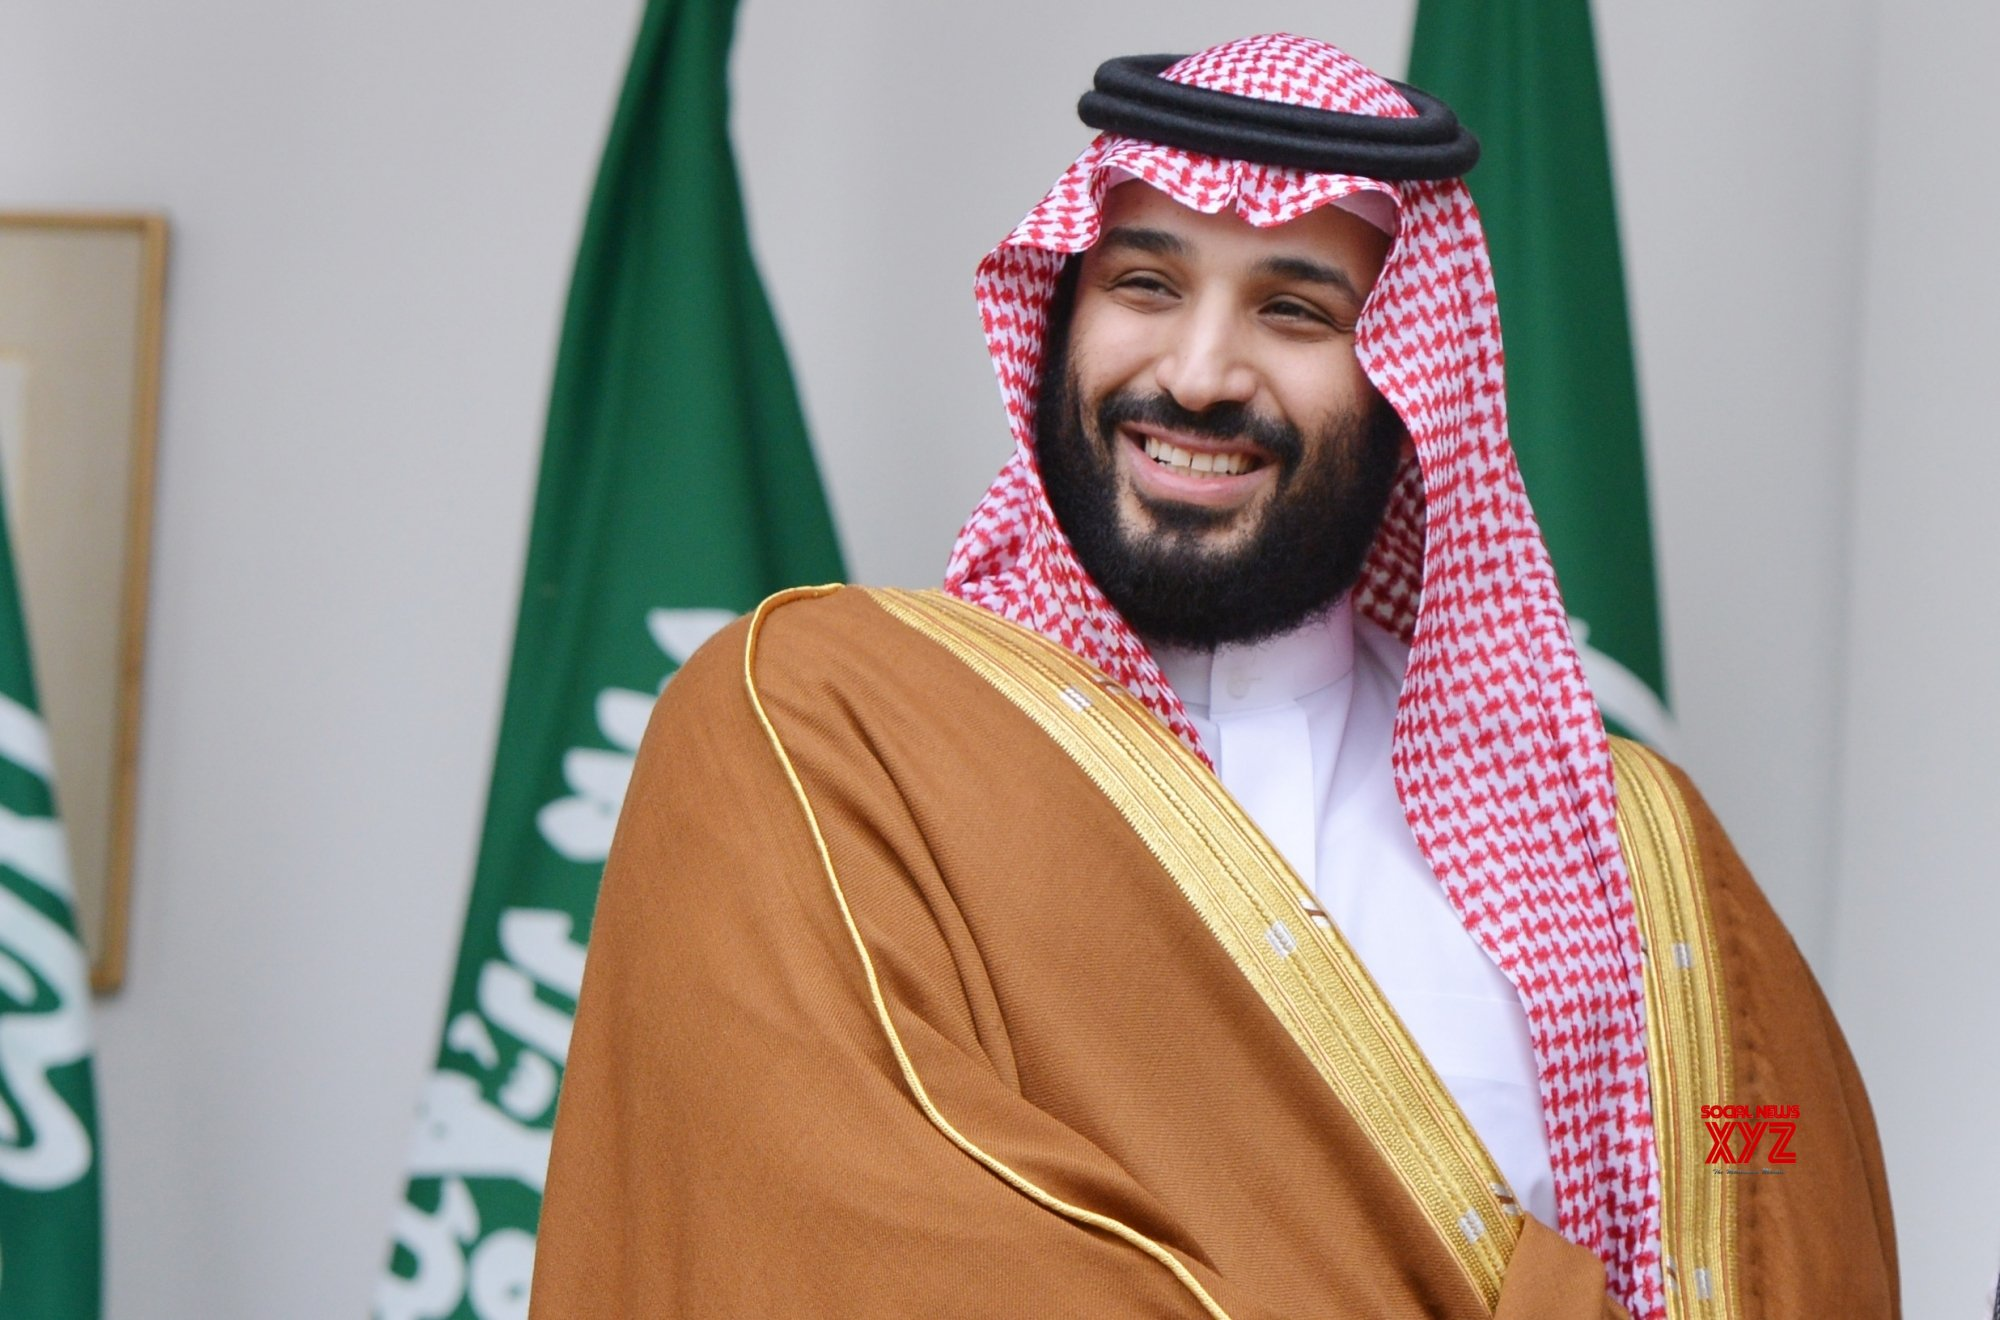 MBS' sister faces trial over attack on workman